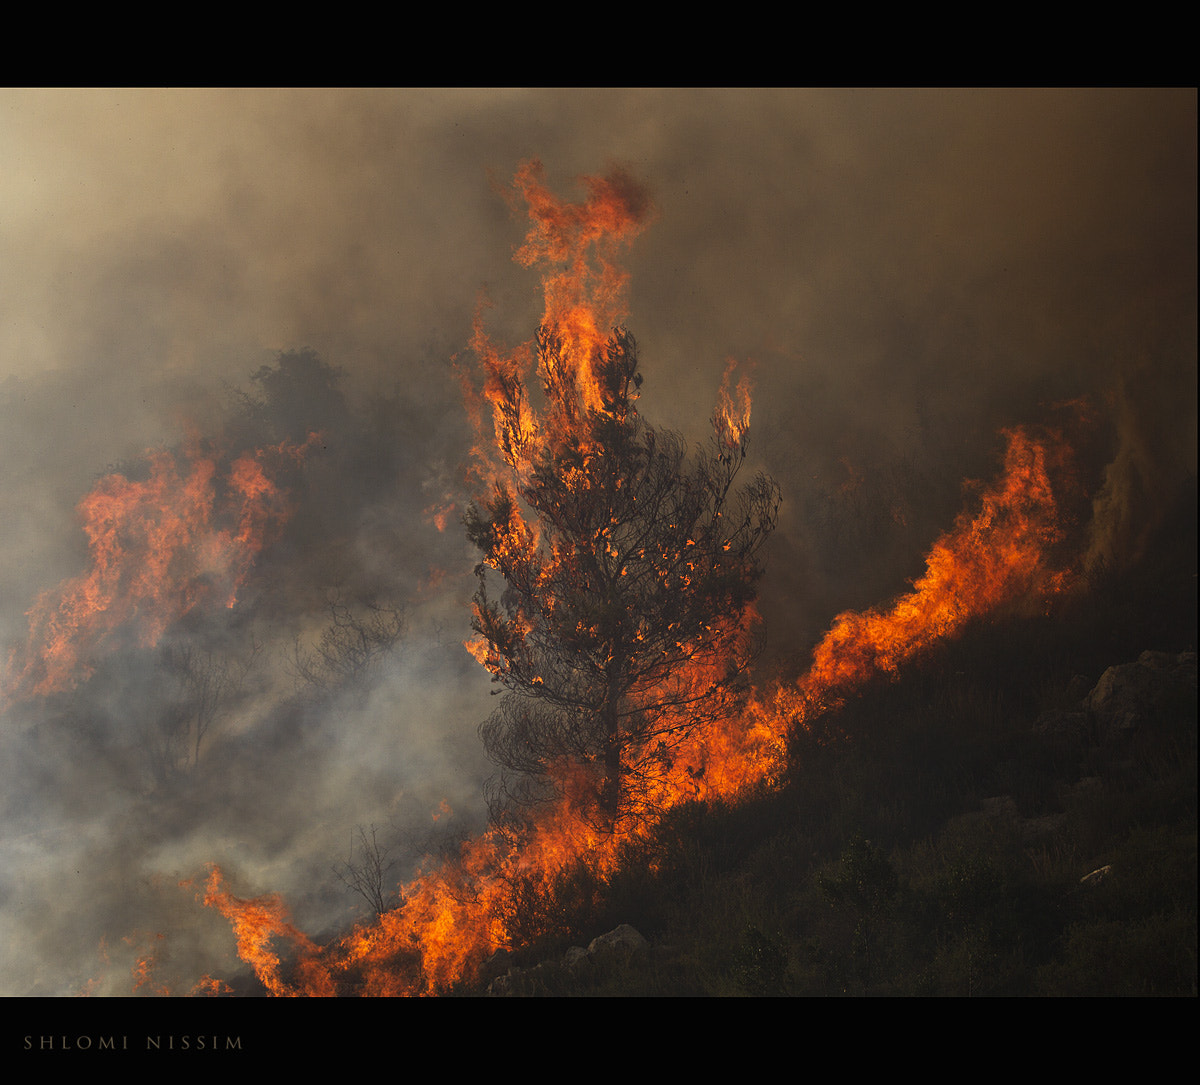 Photograph fire by shlomi nissim on 500px